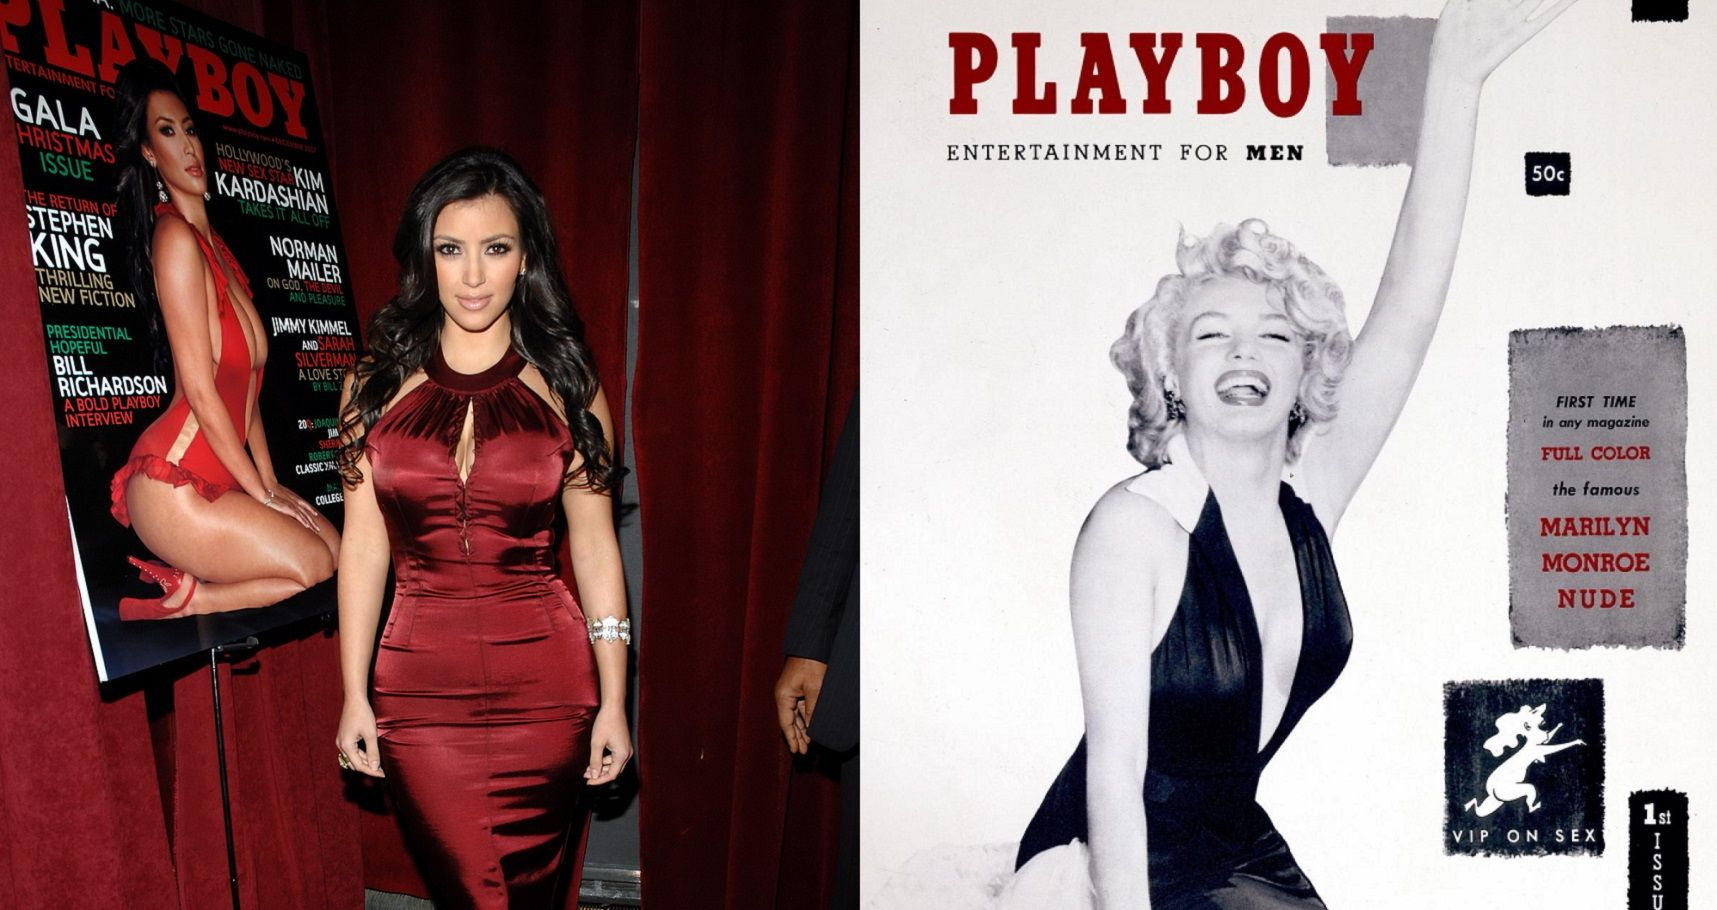 The 10 Best-Selling Playboy Issues Of All Time